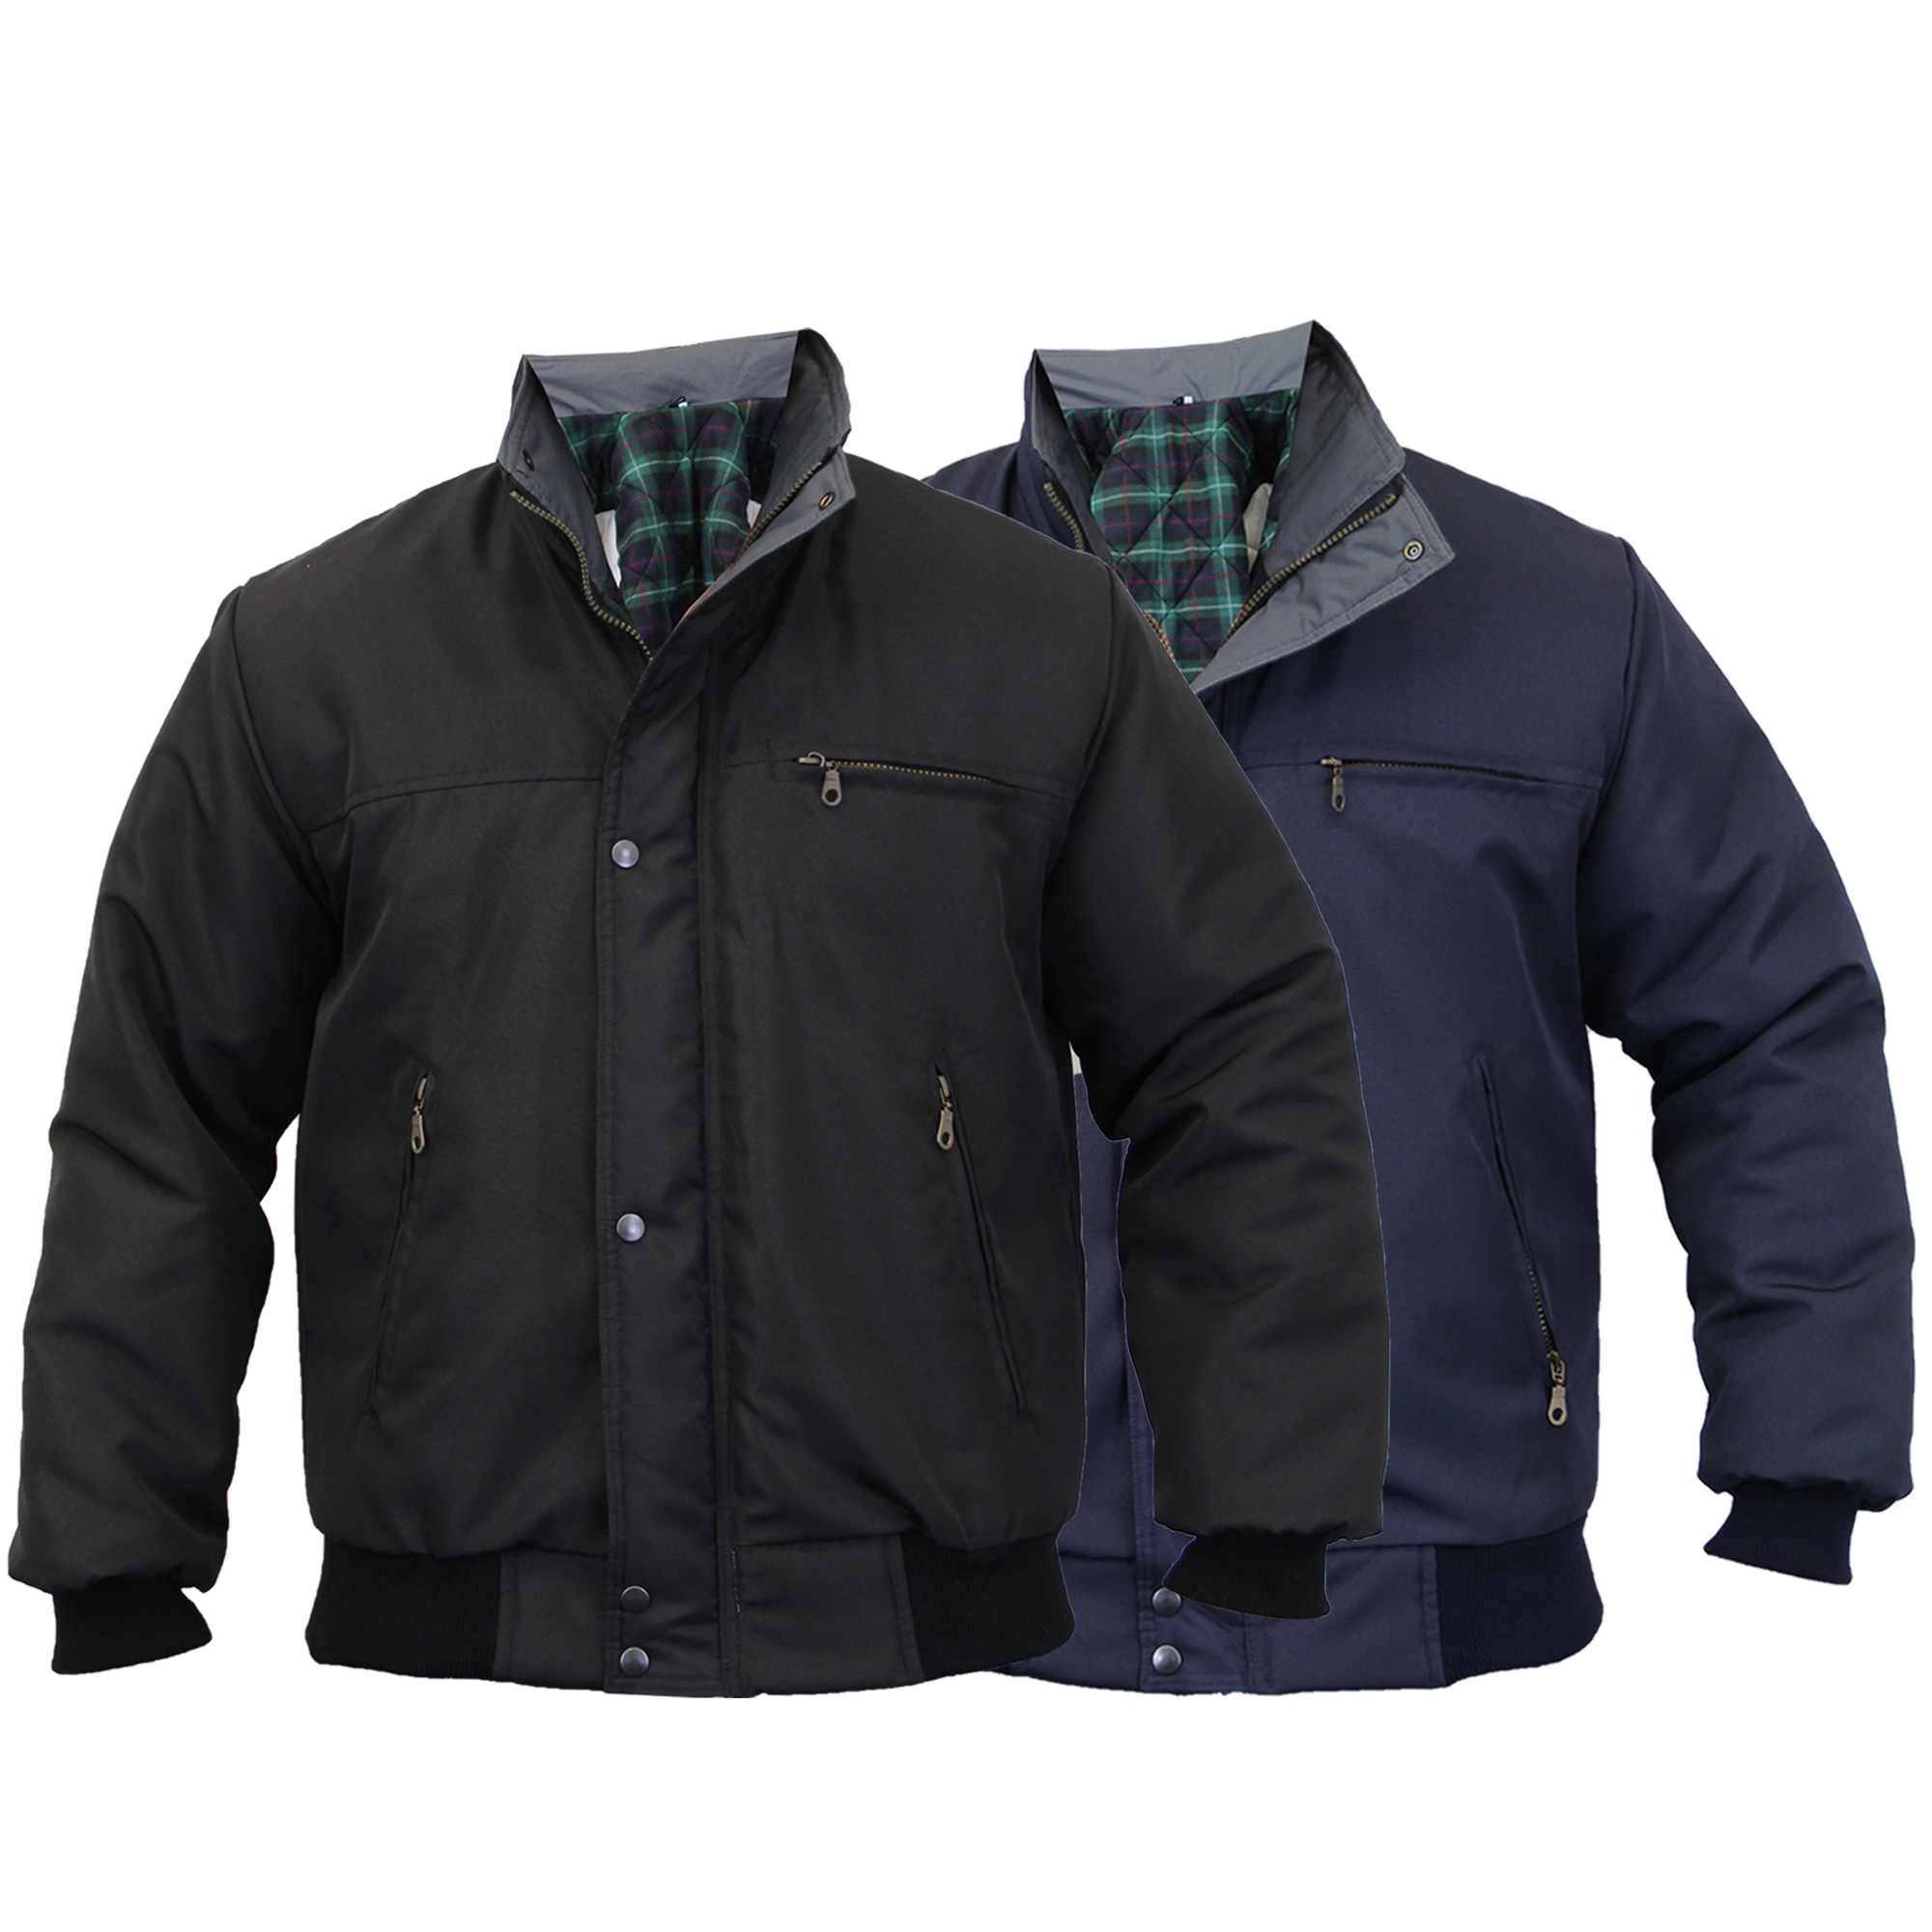 4eaa5f929 Details about Mens SKY DIVER Bomber Jacket Padded Coat Work Quilted Checked  Tartan Winter New